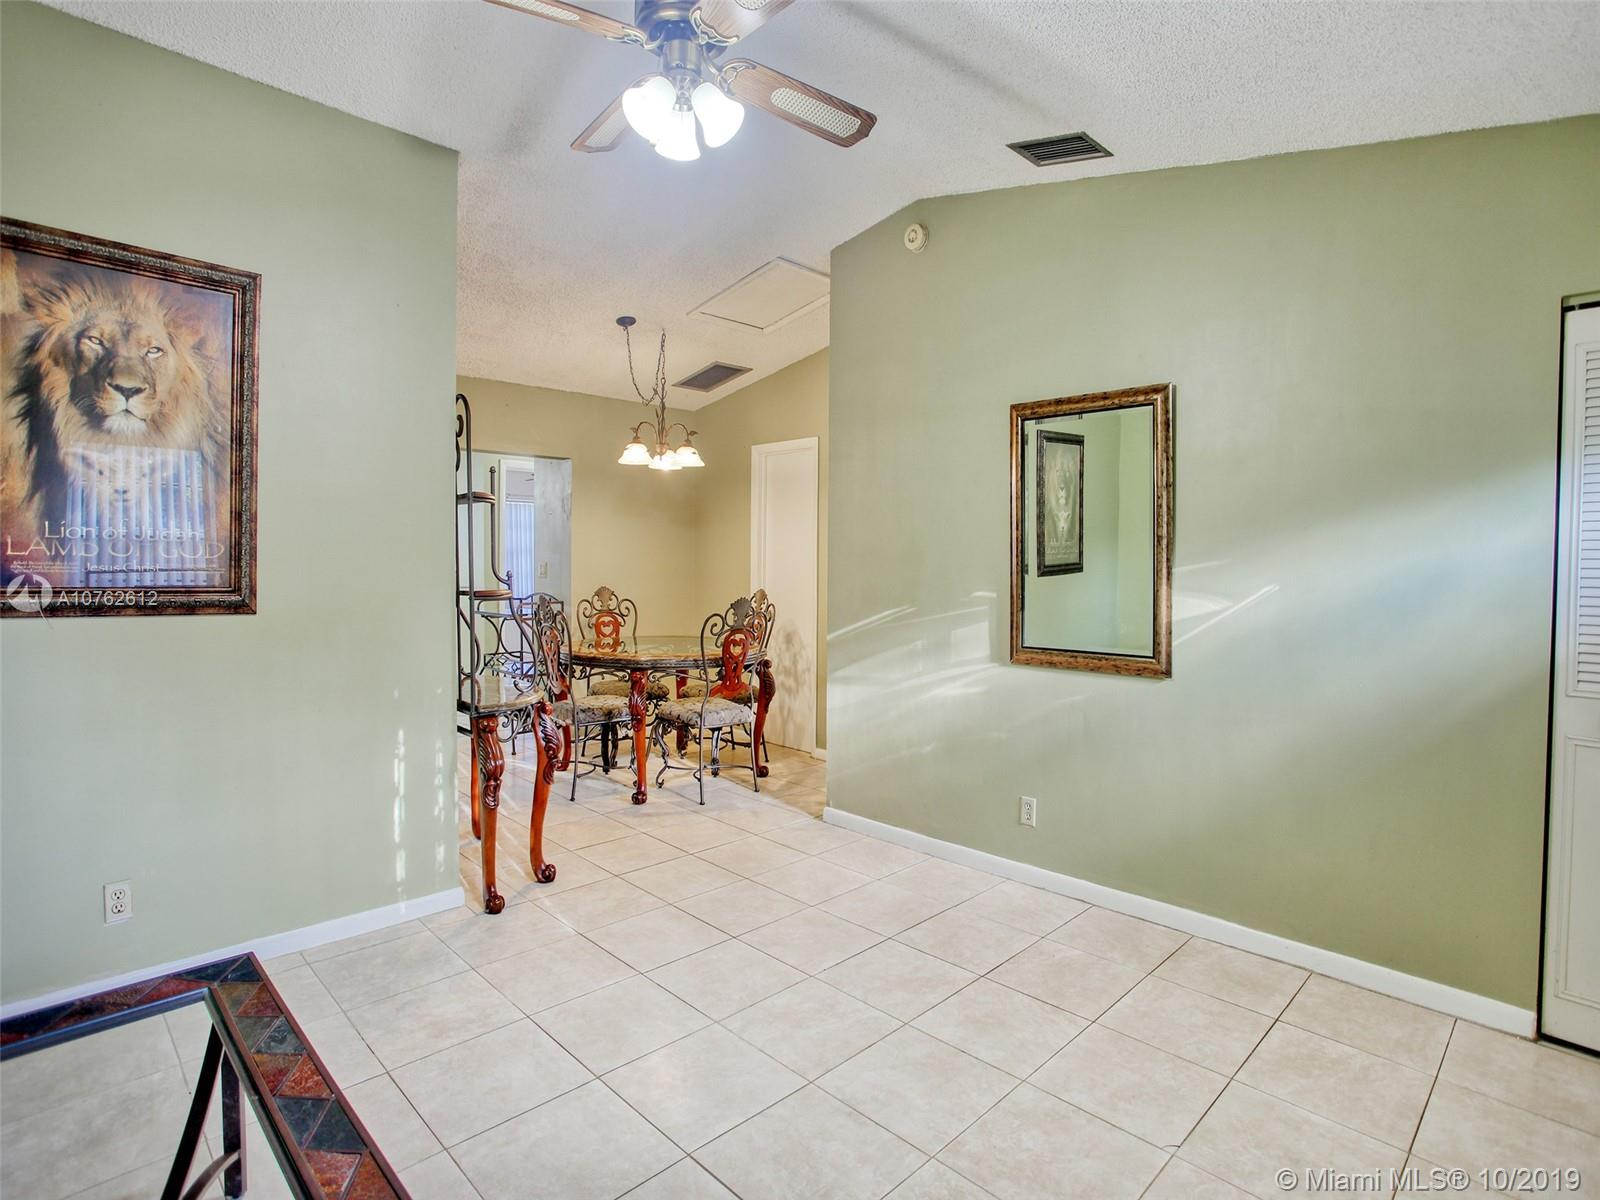 DO NO MISS OUT - COMPLETELY TURNKEY 2/2 WATERFRONT VILLA - FRUIT TREES - CLEAN - ABSOLUTE STEAL AT THIS PRICE POINT - SHOWINGS ARE EASY - AGENT IS FRIENDLY - THIS IS A NO-BRAINER FOR A STARTER HOME - SCHEDULE YOUR SHOWING TODAY!!!